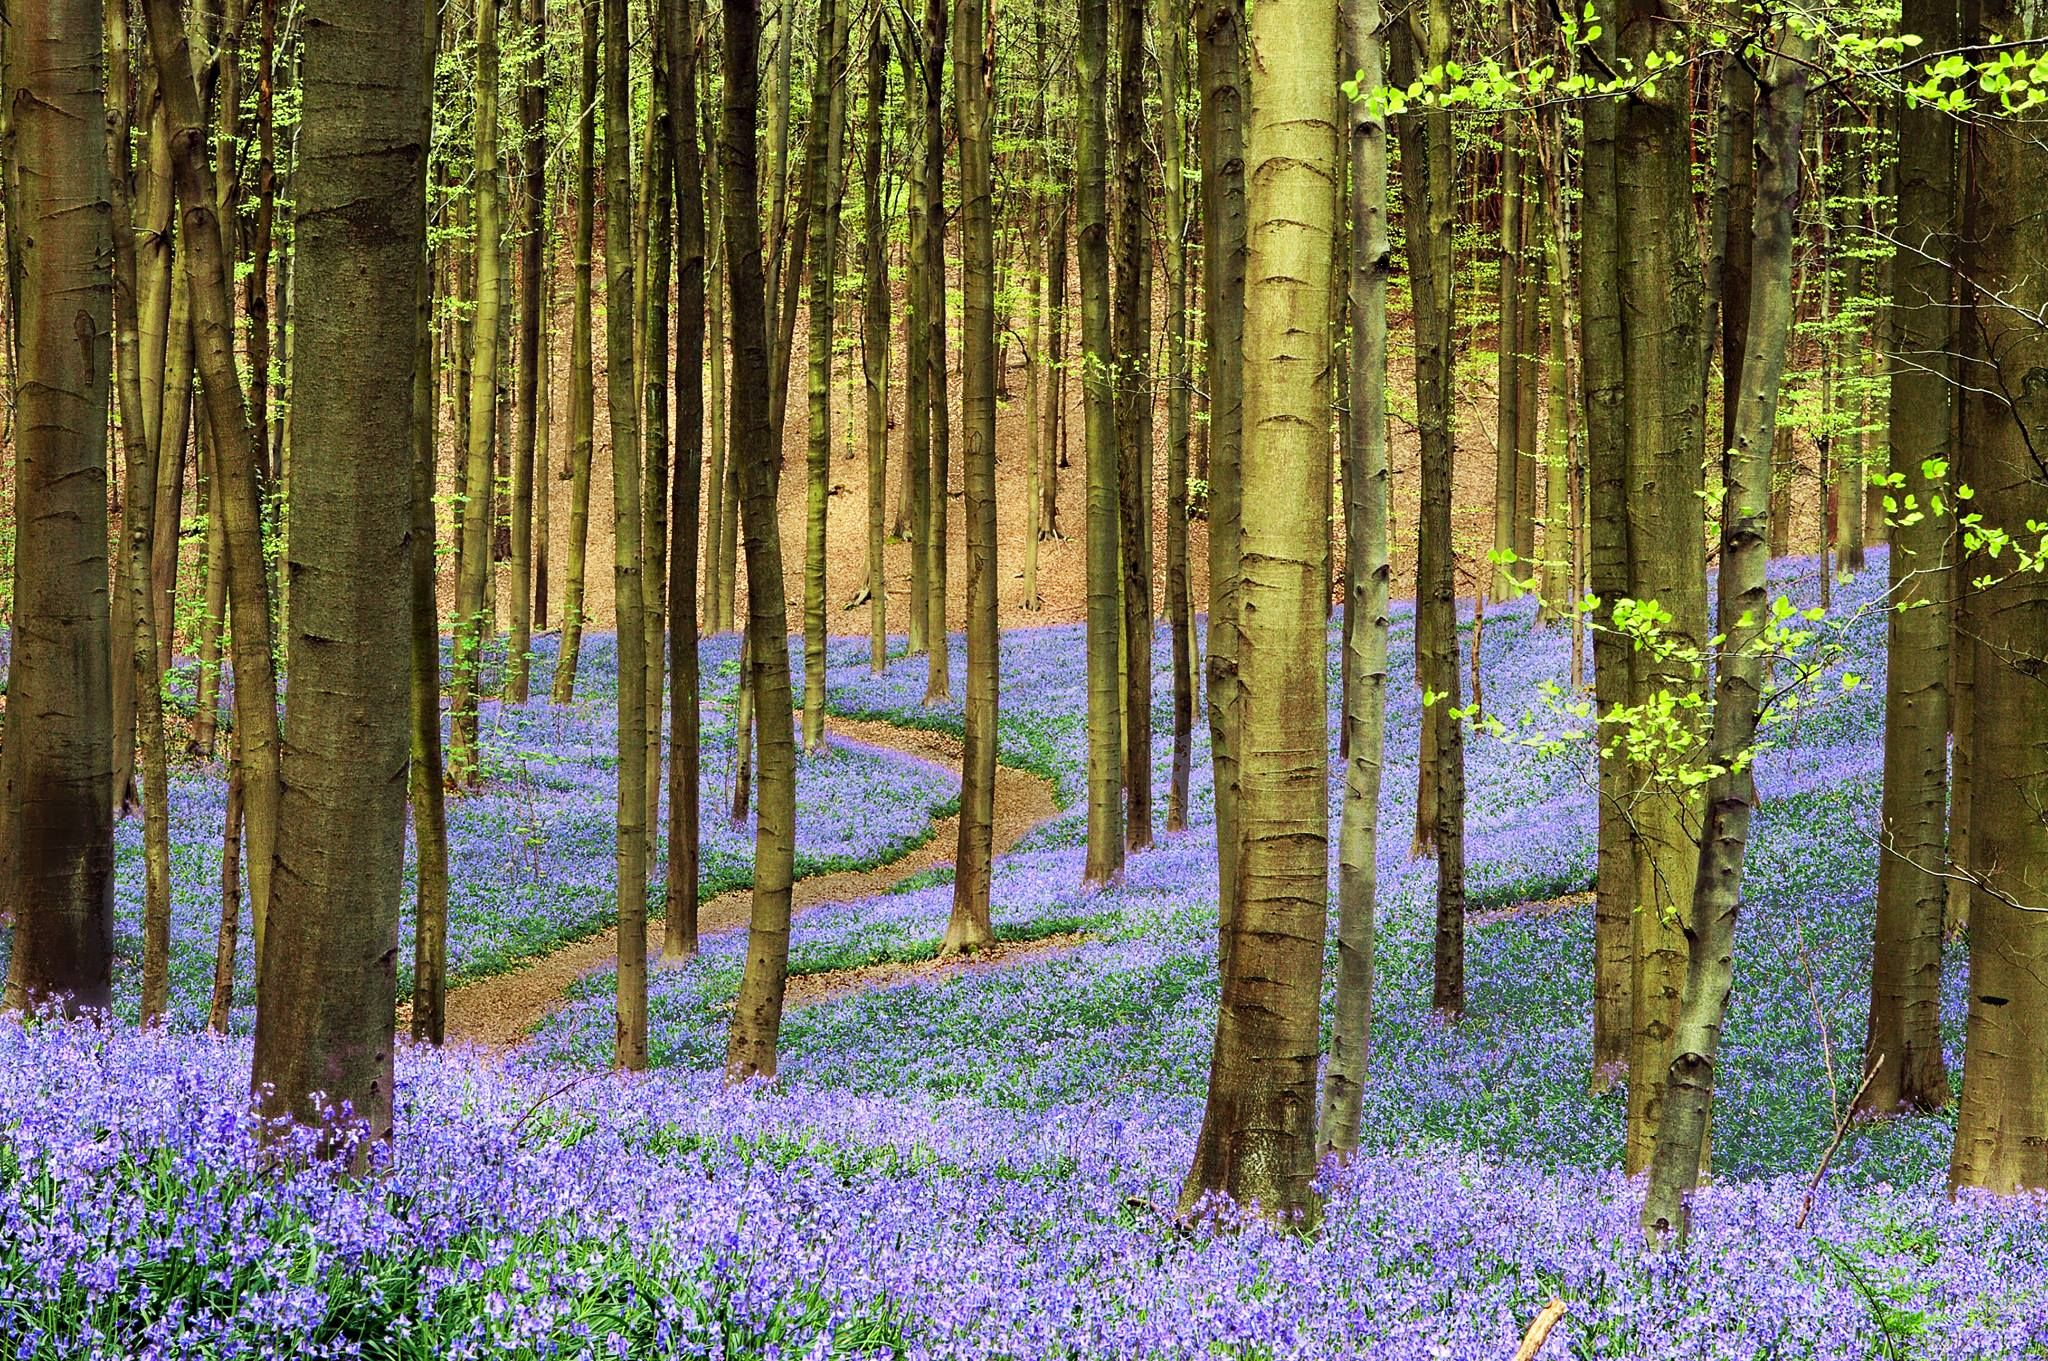 Brussels is blooming! This month don´t miss the breathtaking carpet of bluebells at the Hallerbos woods!